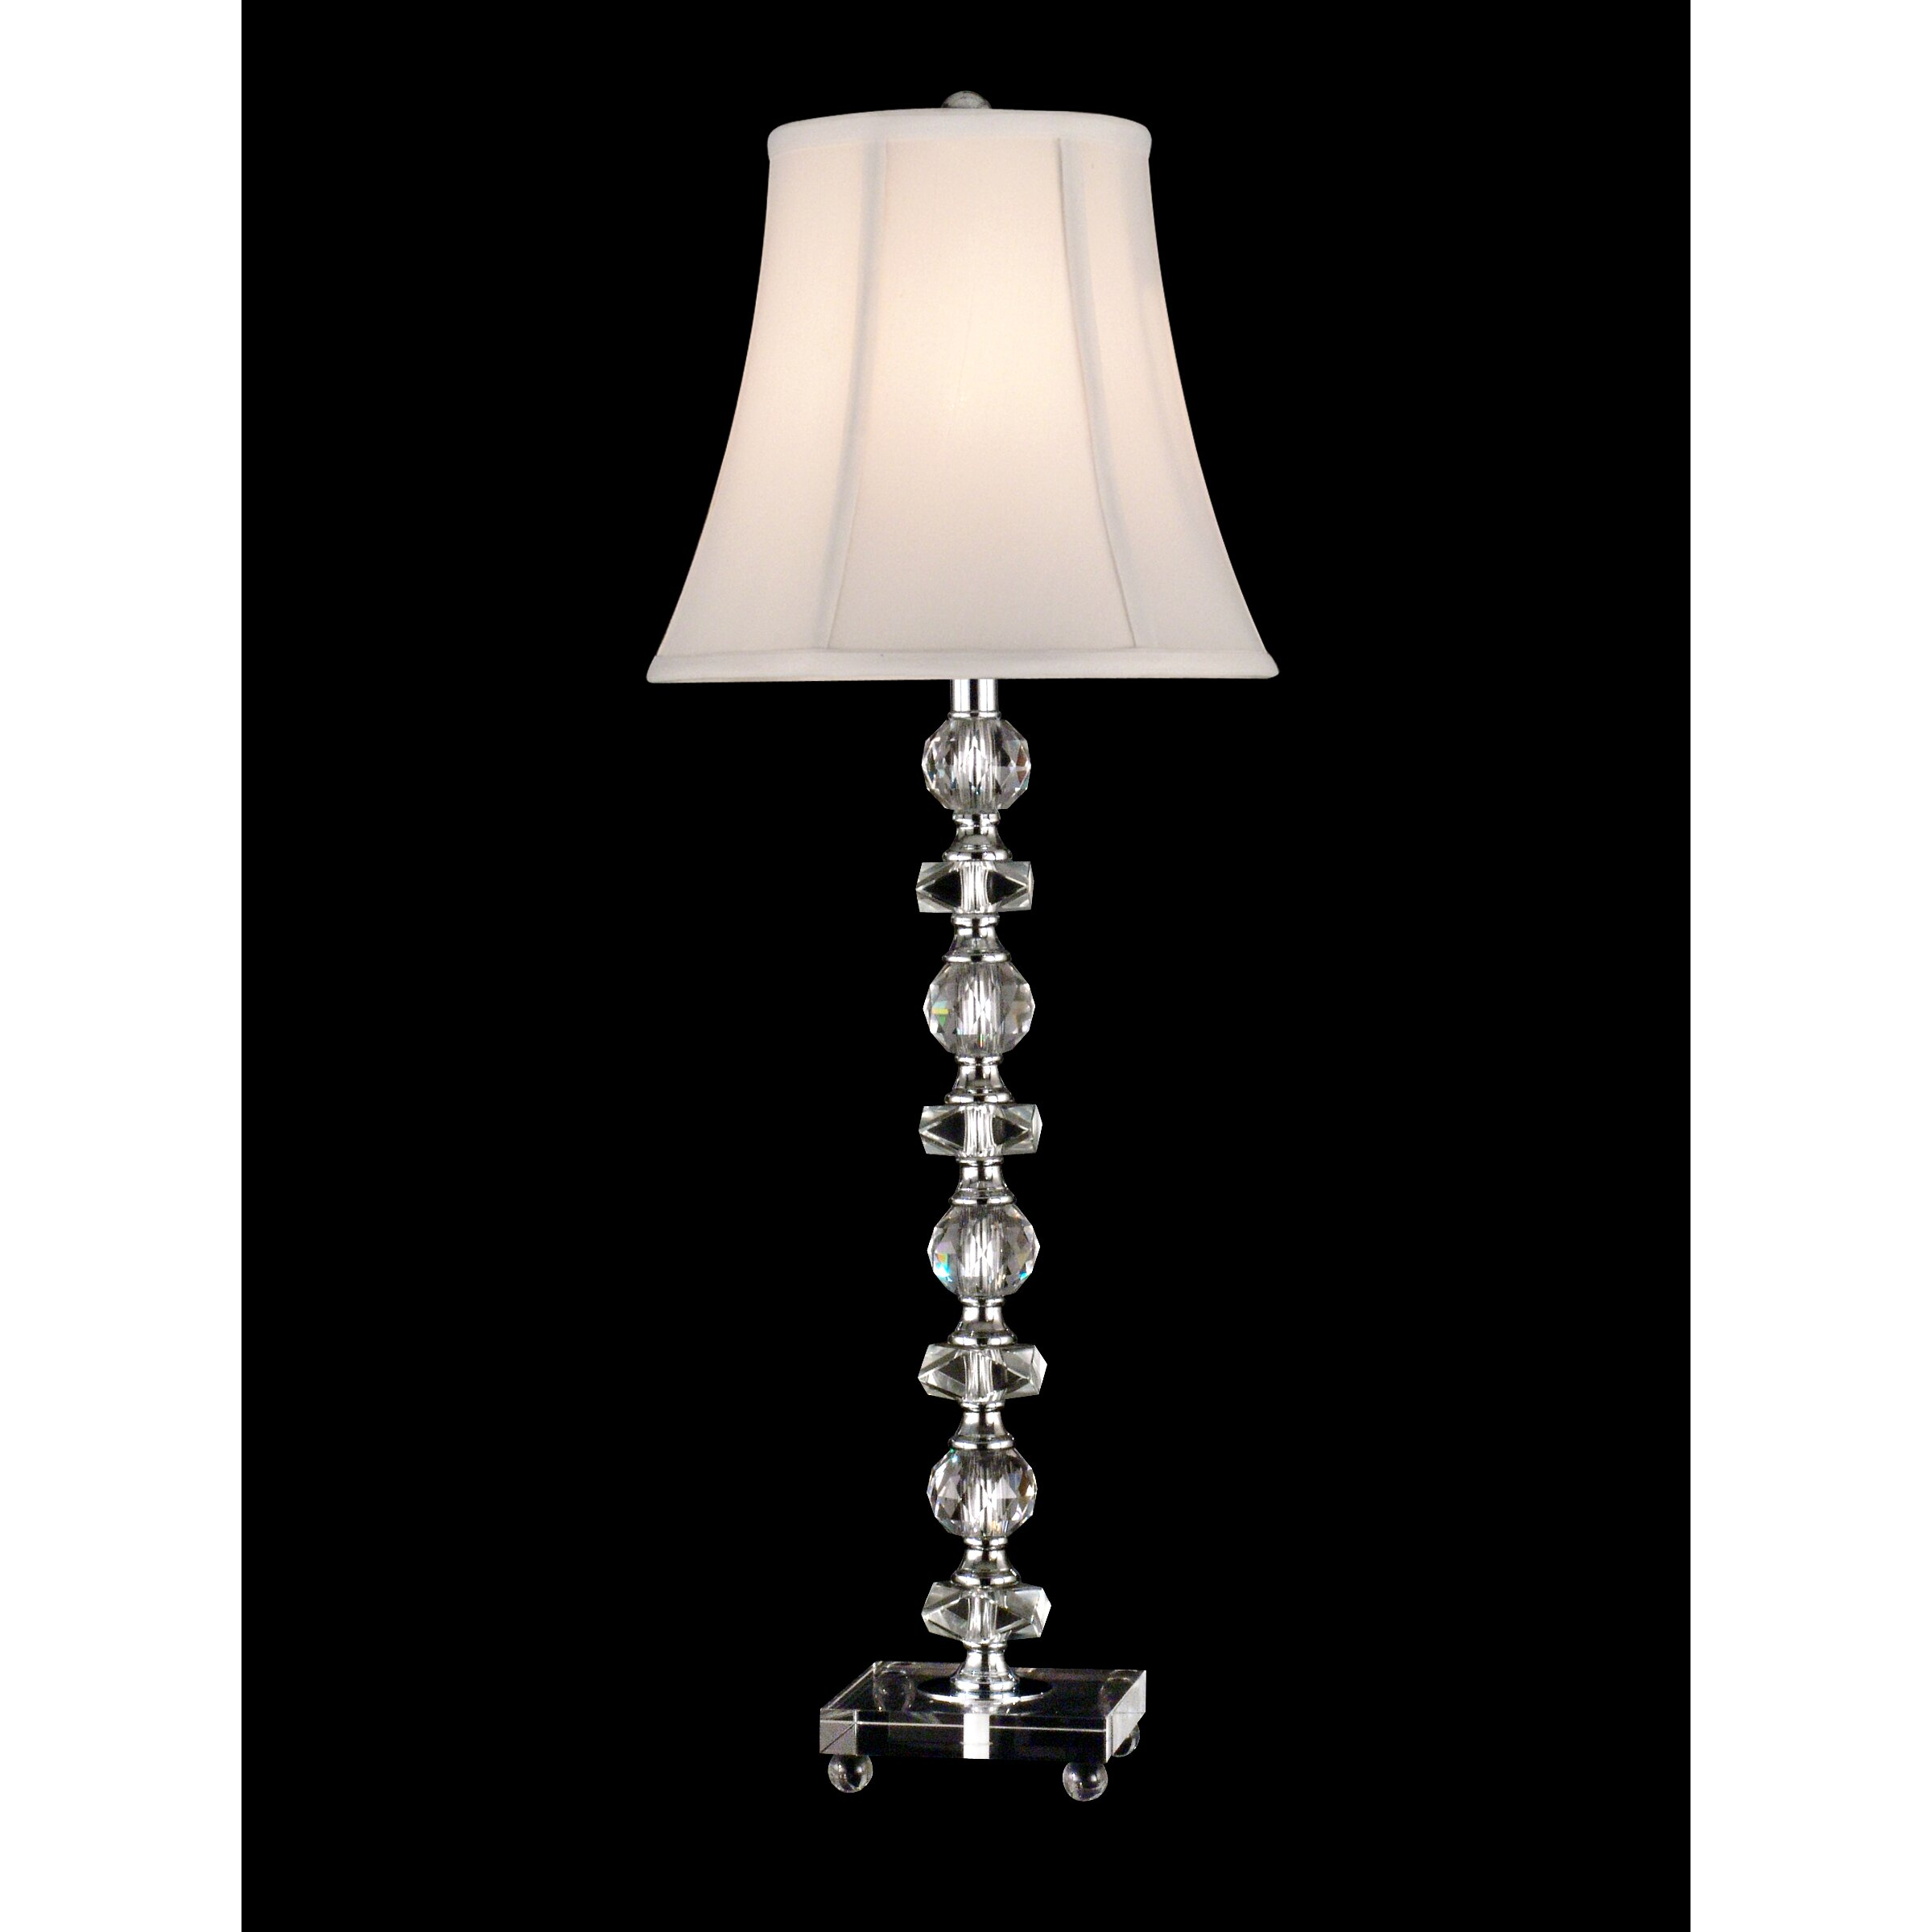 dale tiffany buffet simon 28 5 h table lamp with bell shade revie. Black Bedroom Furniture Sets. Home Design Ideas